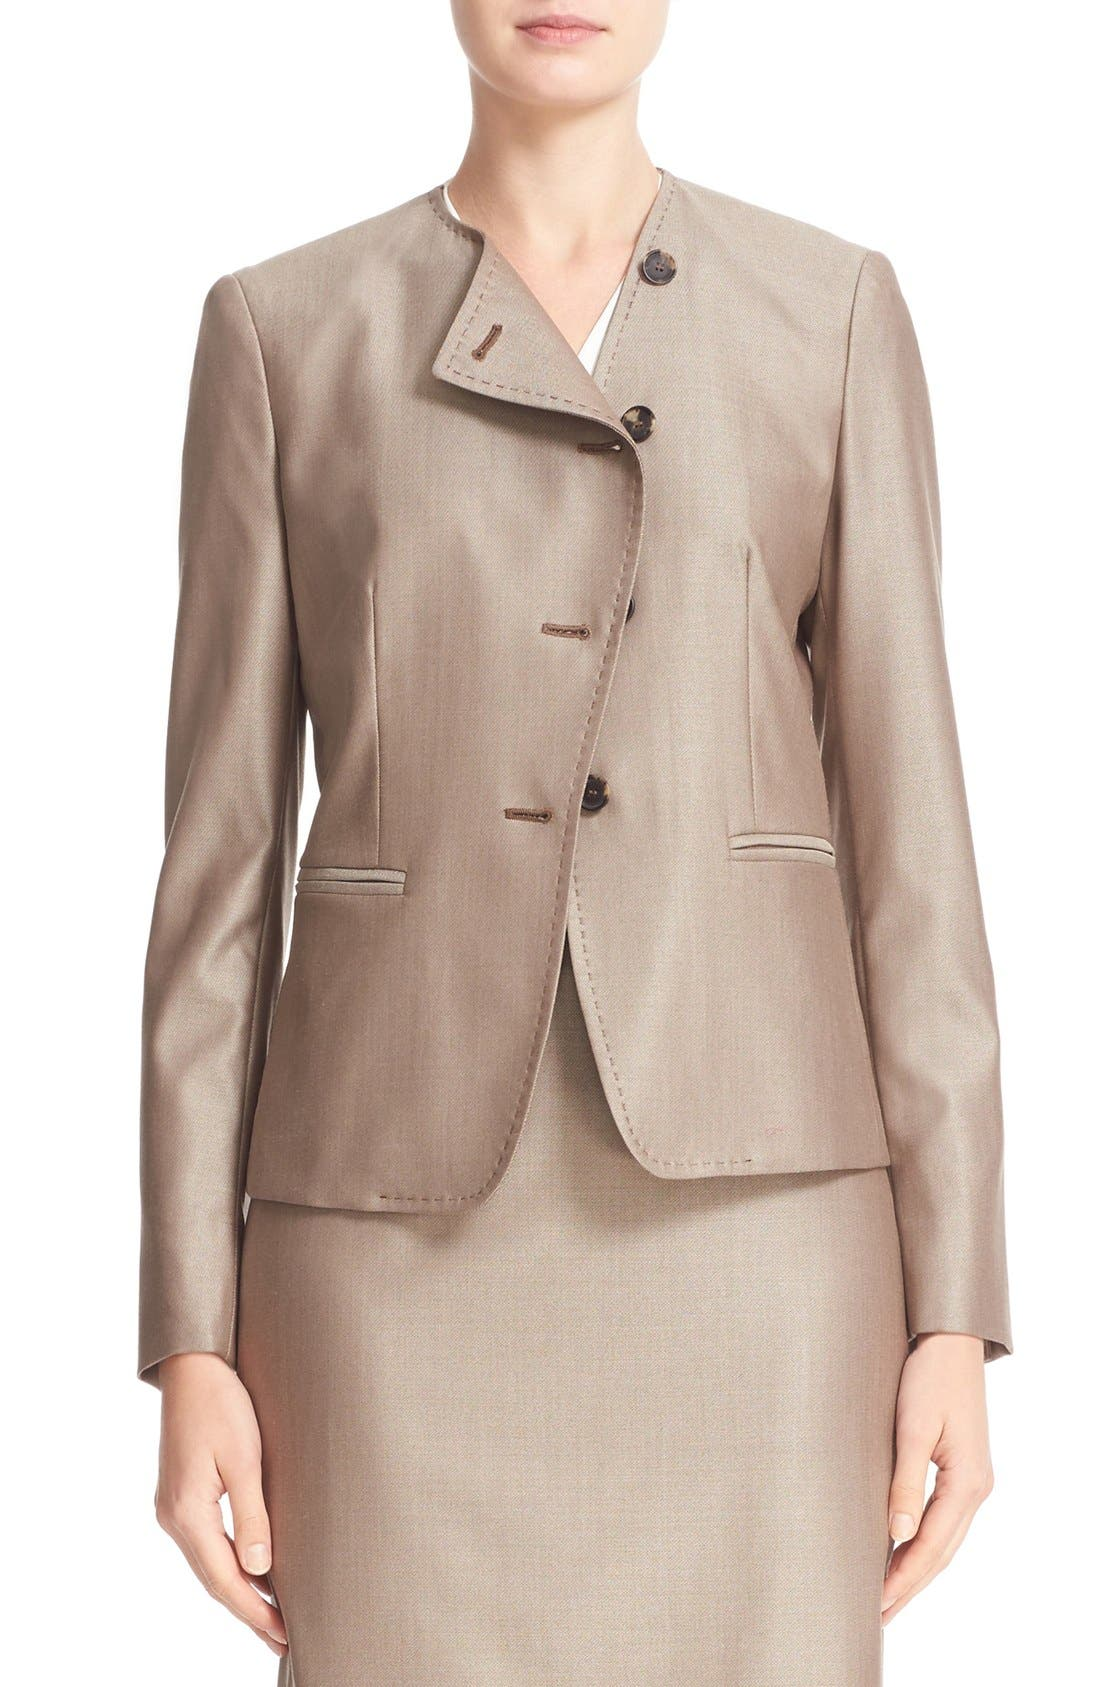 Erba Asymmetrical Jacket,                         Main,                         color, Copper